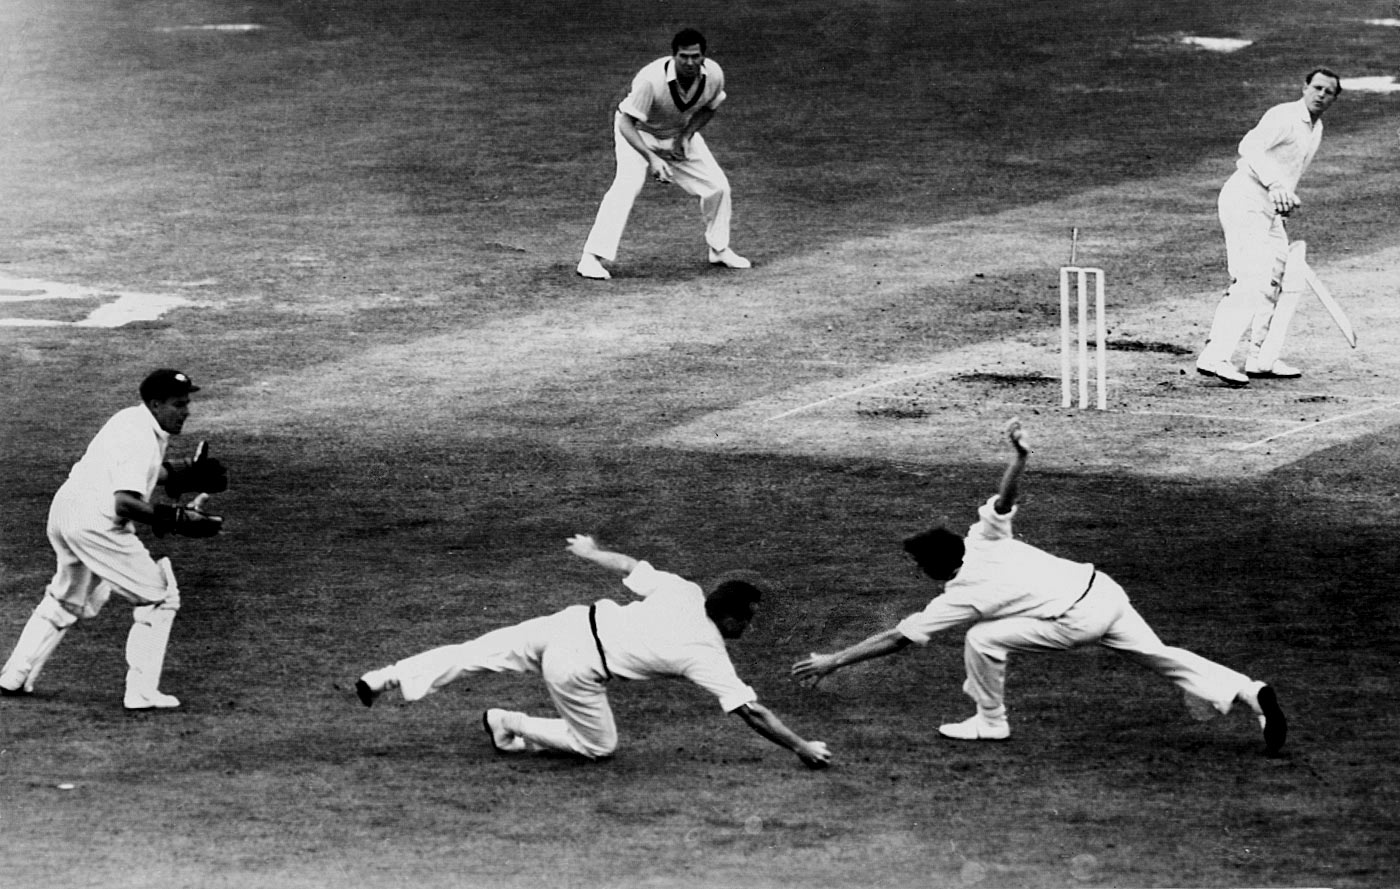 Bob Simpson was the ideal foil at slip for the likes of Alan Davidson and Richie Benaud, who took the ball away from the right-handers